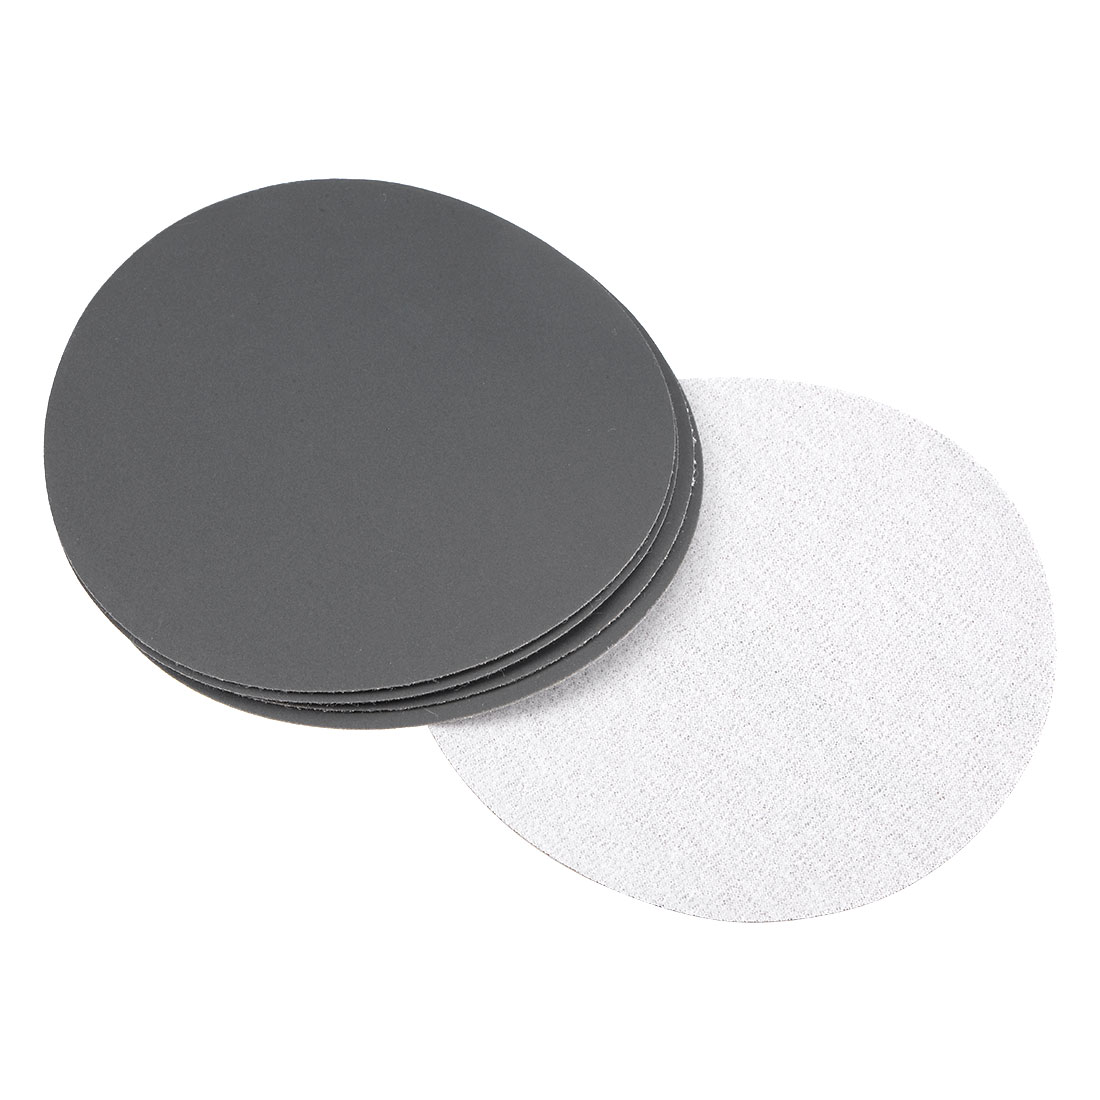 5 inch Wet Dry Discs 1200 Grit Hook and Loop Sanding Disc Silicon Carbide 5pcs